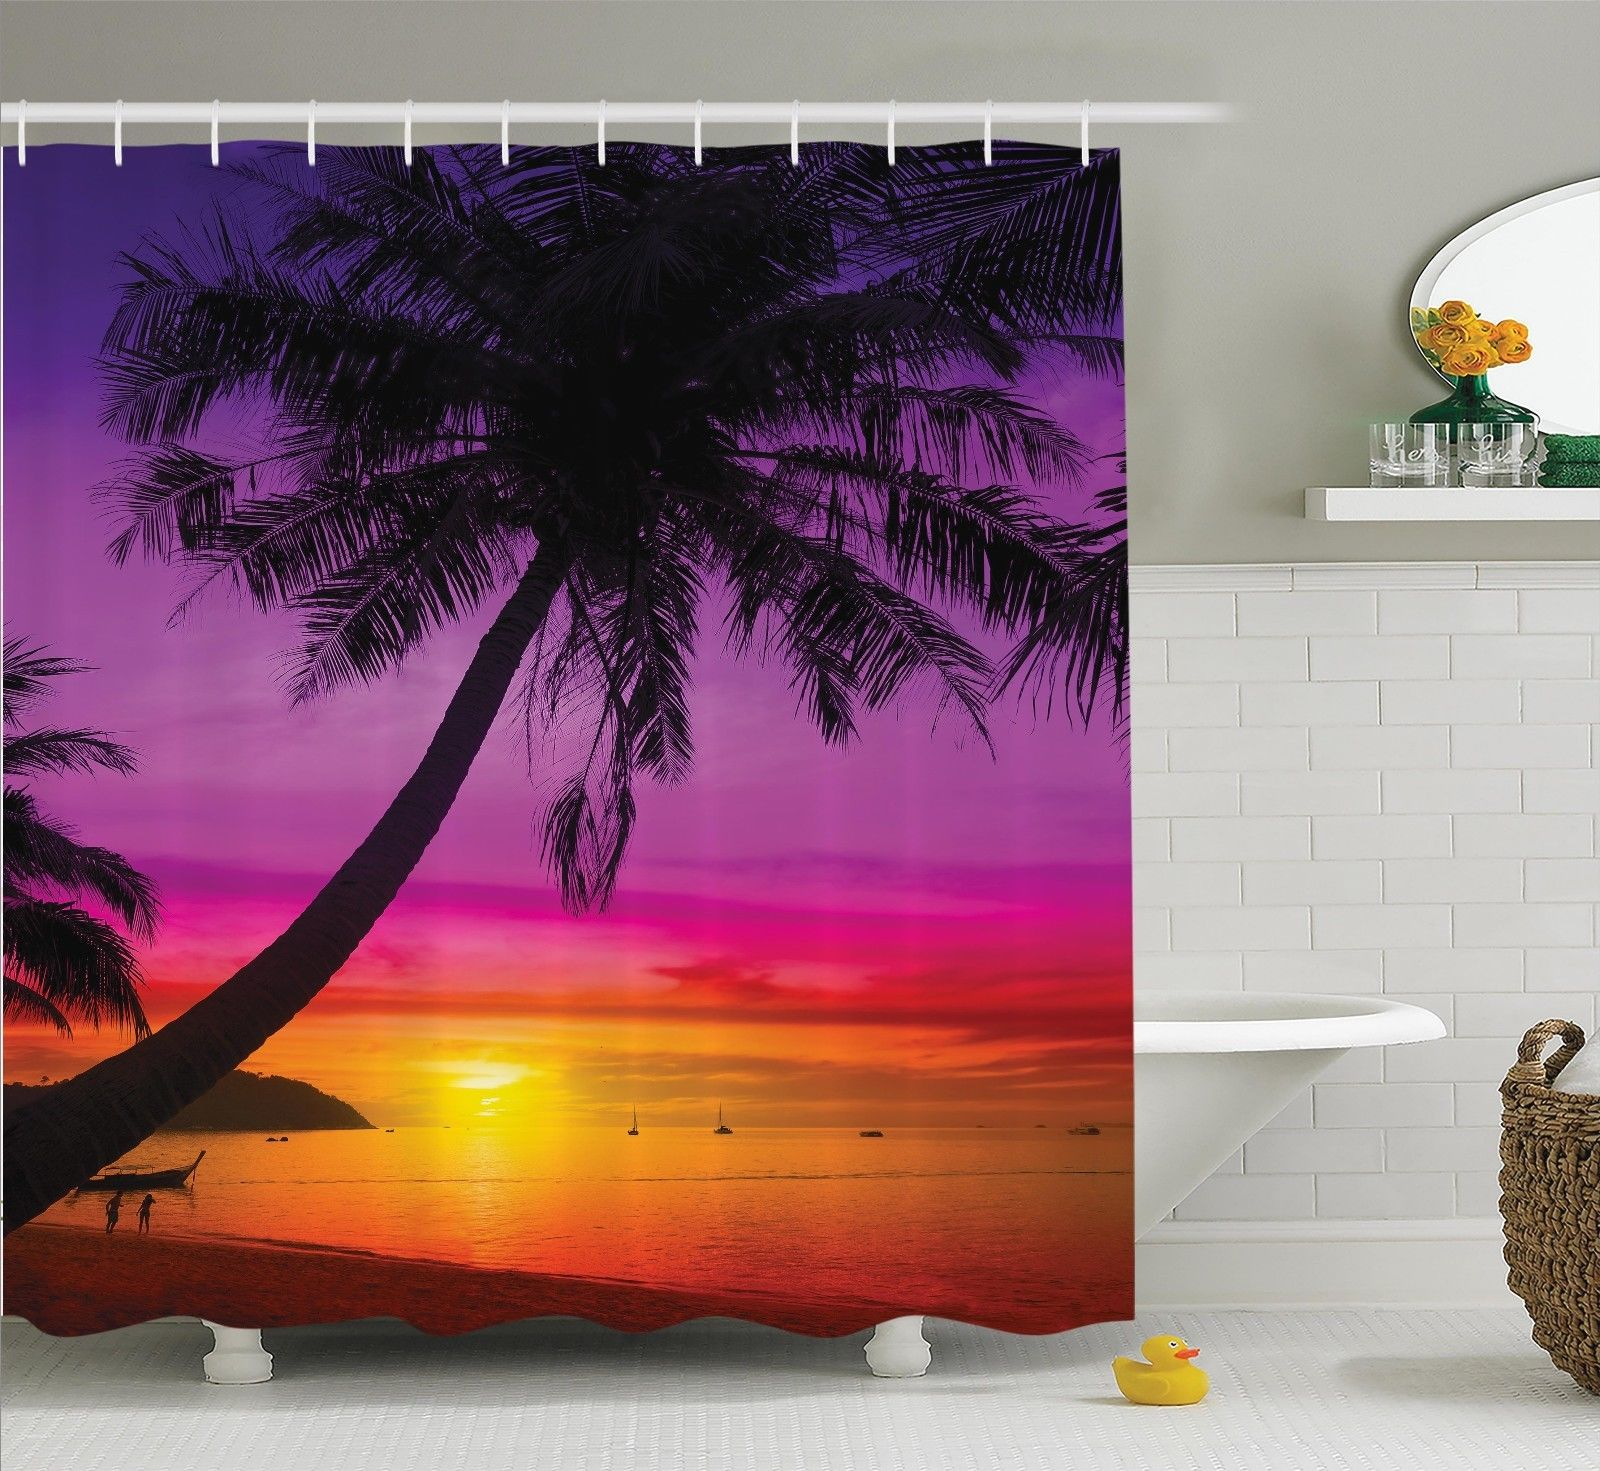 Palm Tree on Tropical Beach Sunset Summertime Travel Theme Shower Curtain Set